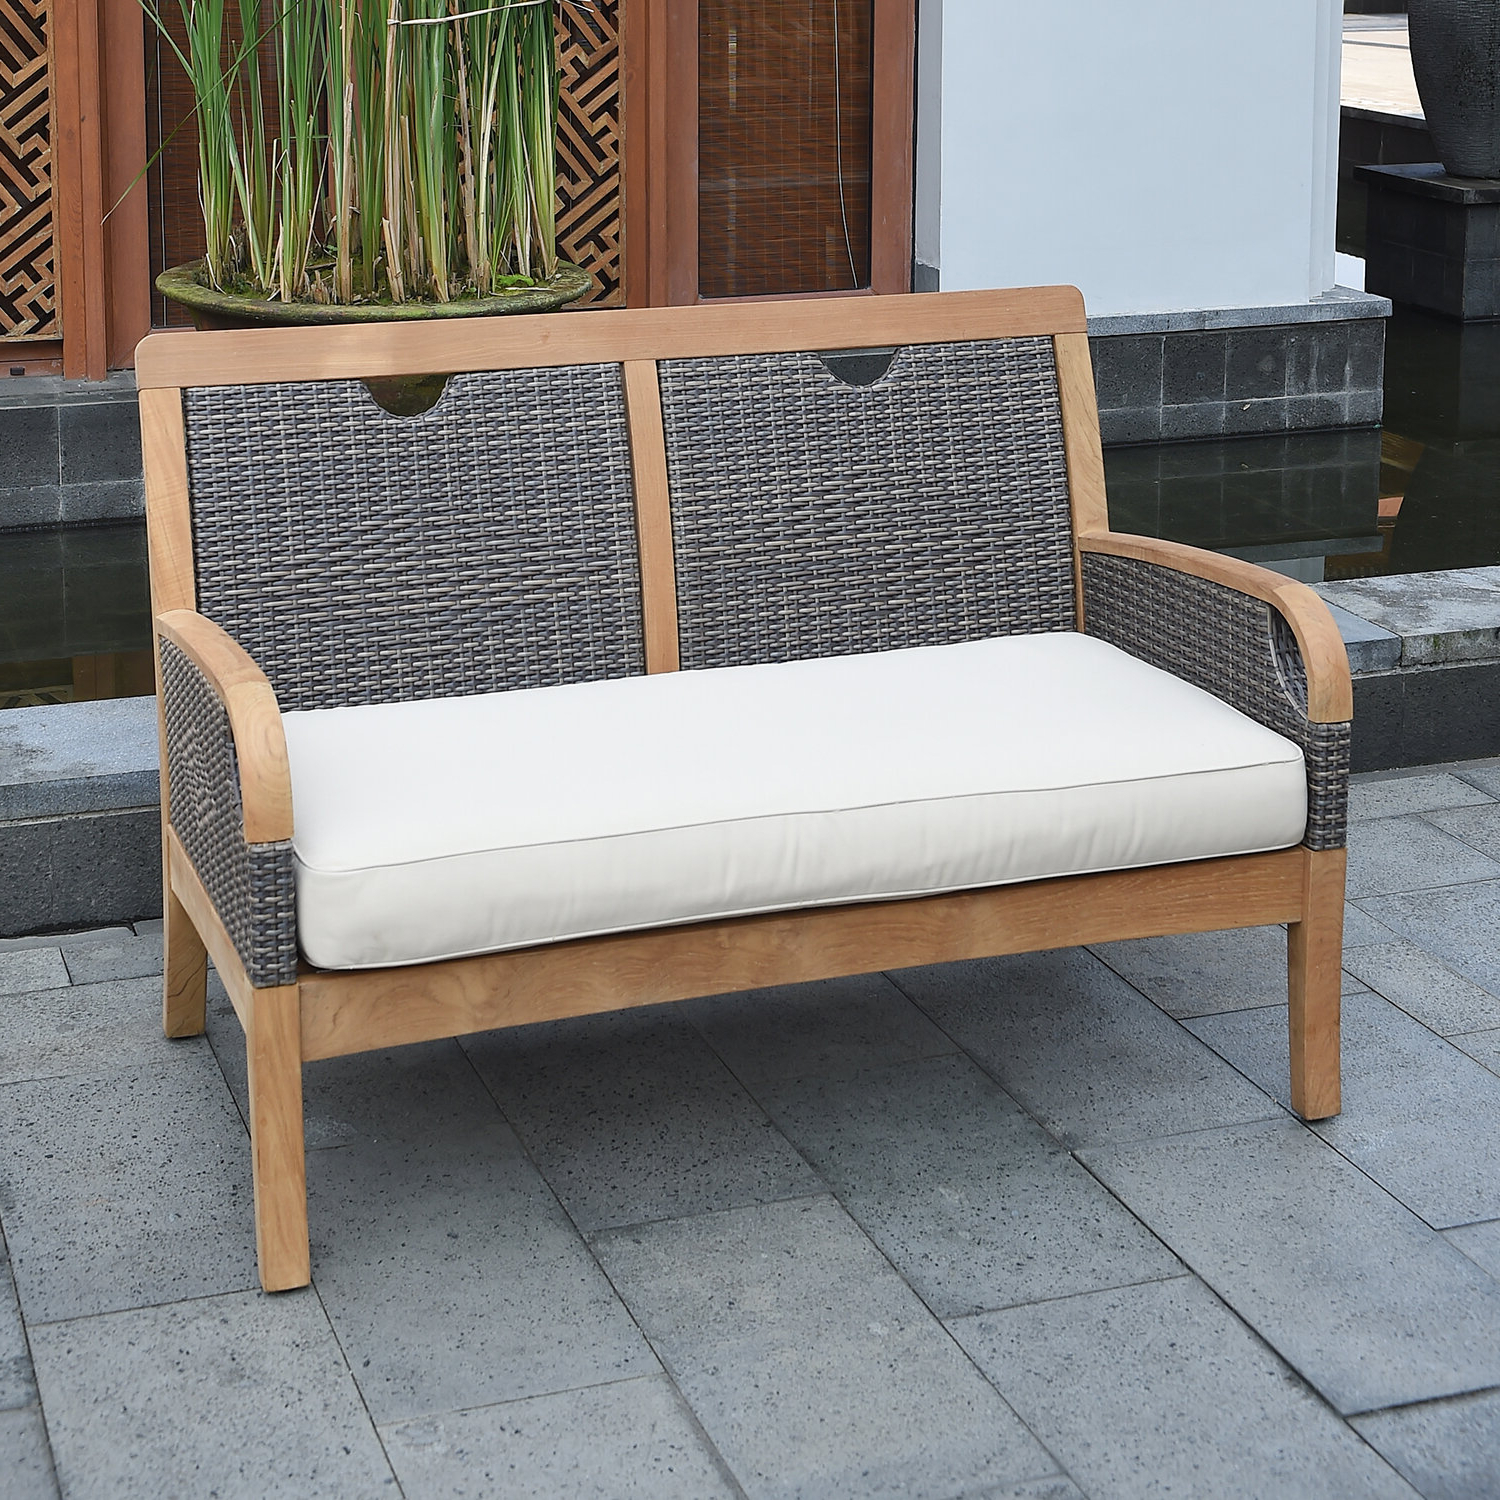 Wakeland Wicker Loveseats With Cushions With Regard To Most Up To Date Mansfield Teak Loveseat With Cushion (Gallery 13 of 25)